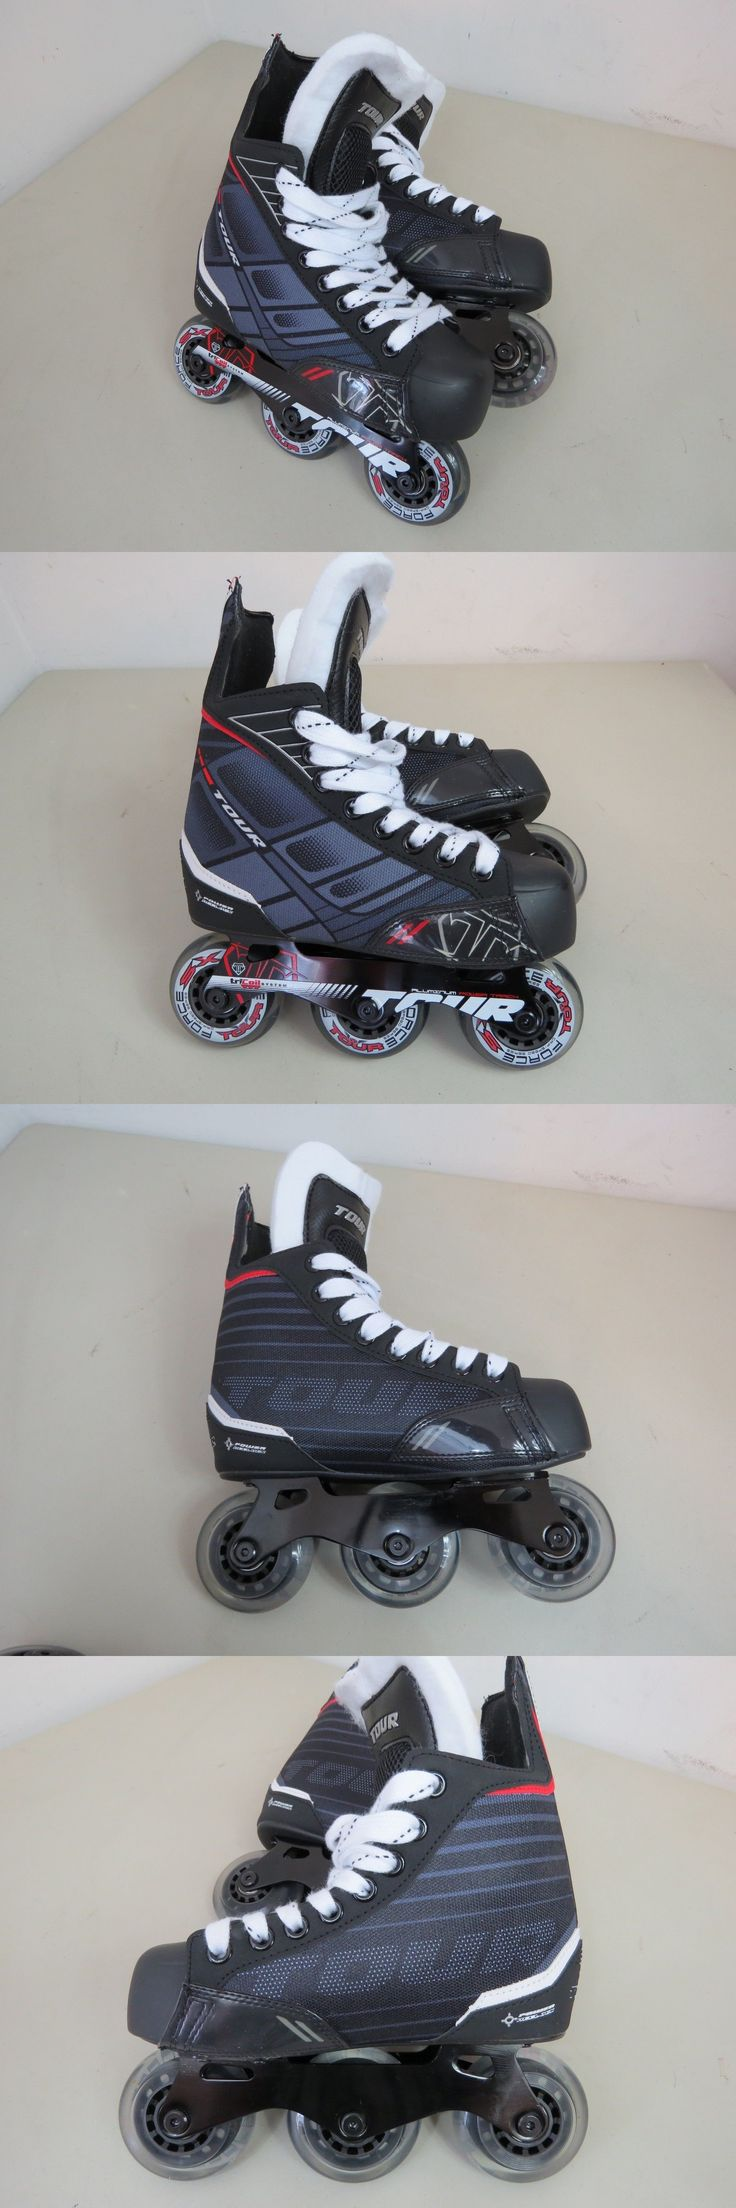 Roller Hockey 64669: Tour Hockey Fb-225 Junior Roller Hockey Skates, Size 1 Youth - New Without Box -> BUY IT NOW ONLY: $40 on eBay!